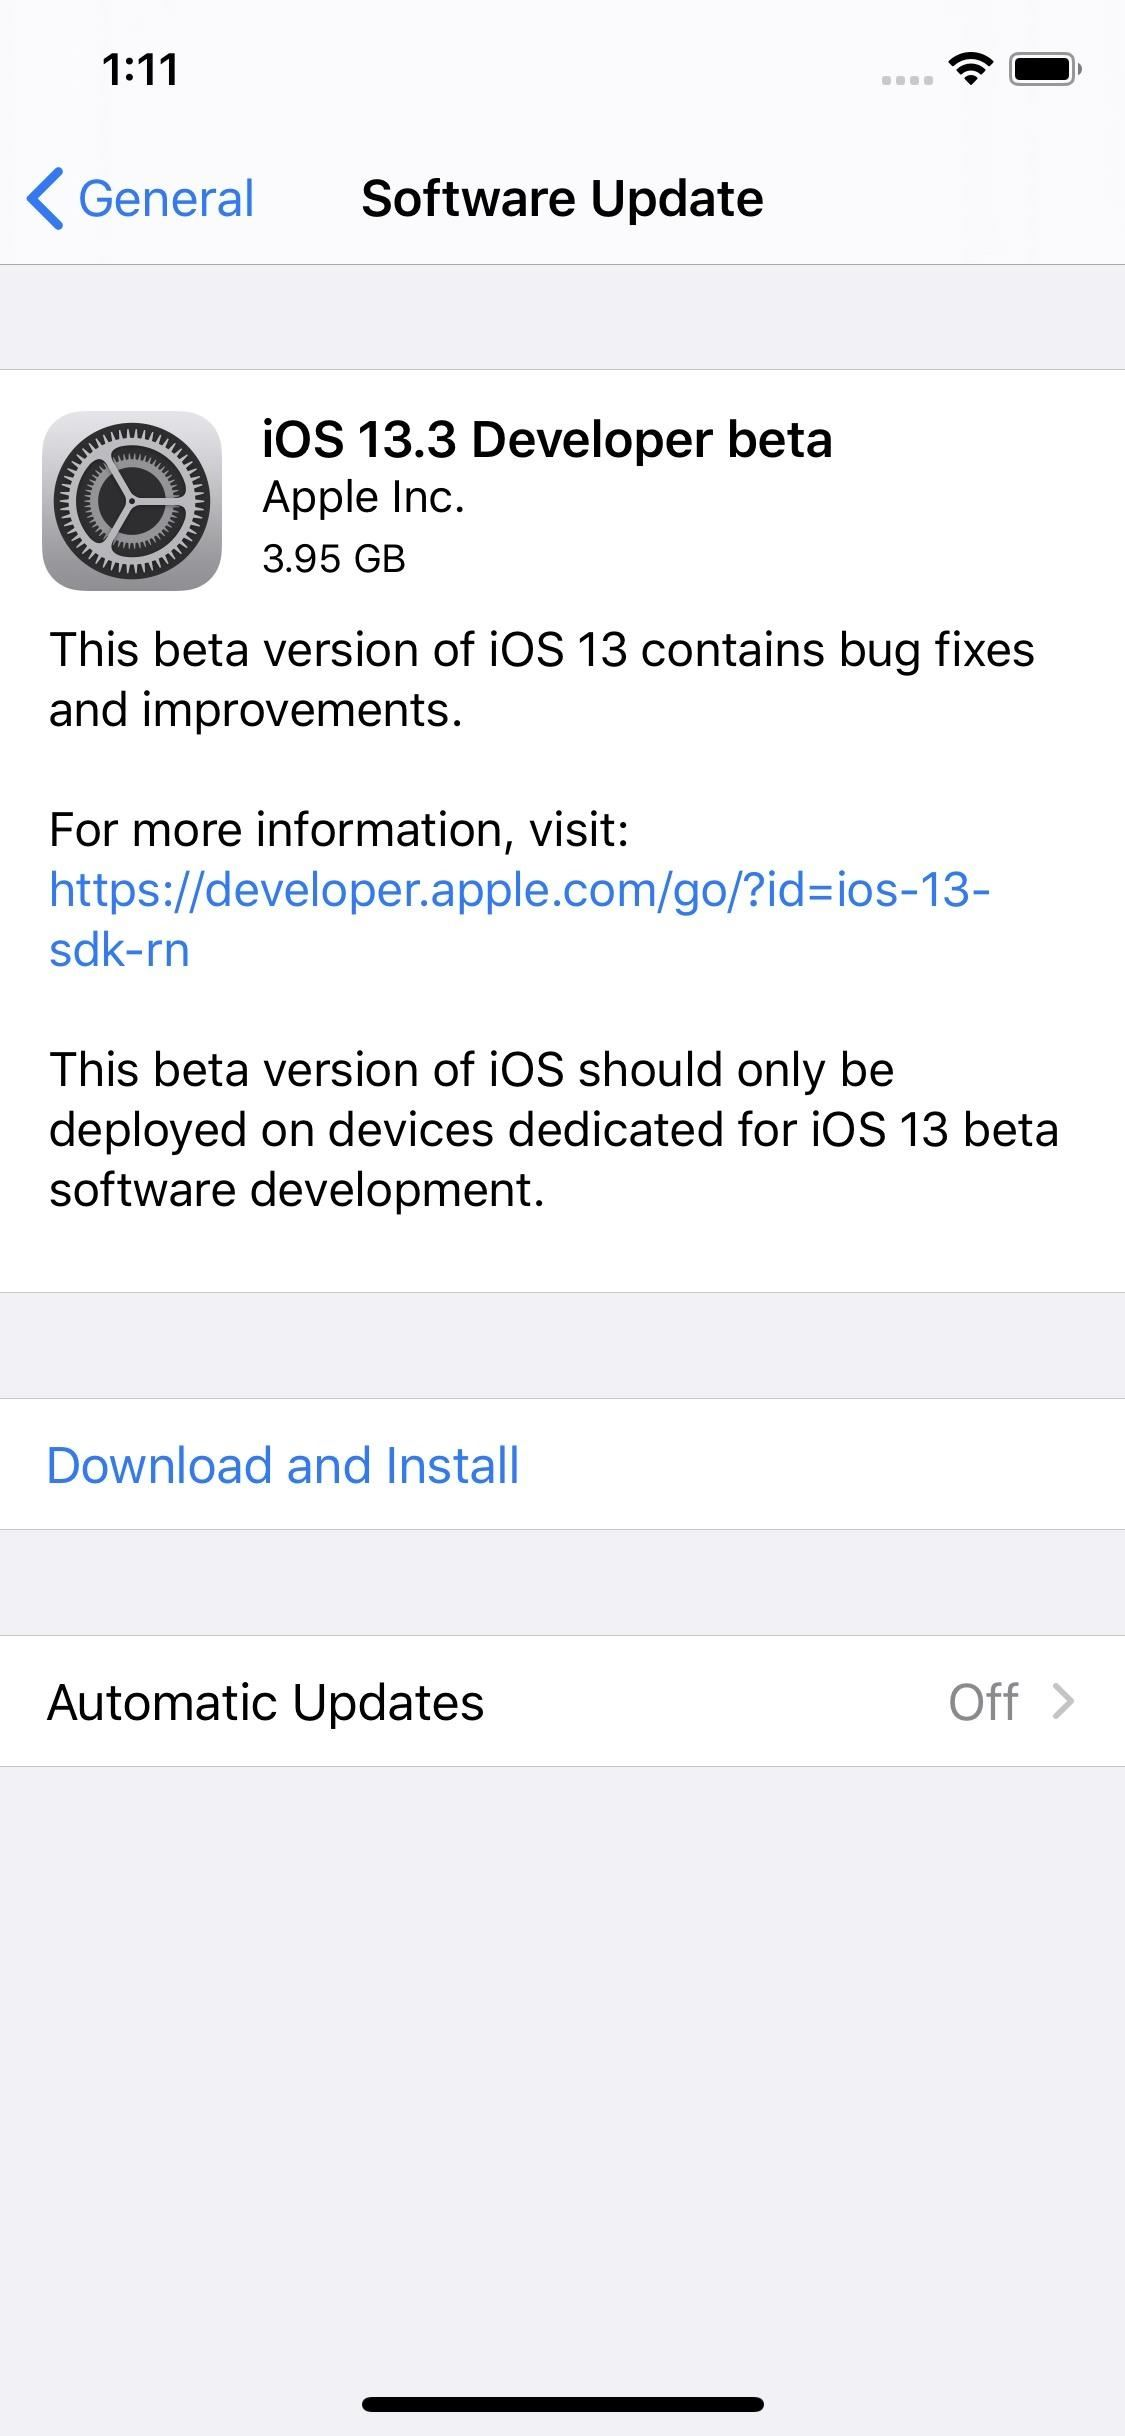 Apple releases iOS 13.3 Beta 1 for iPhone developers, including bug fixes for RAM management